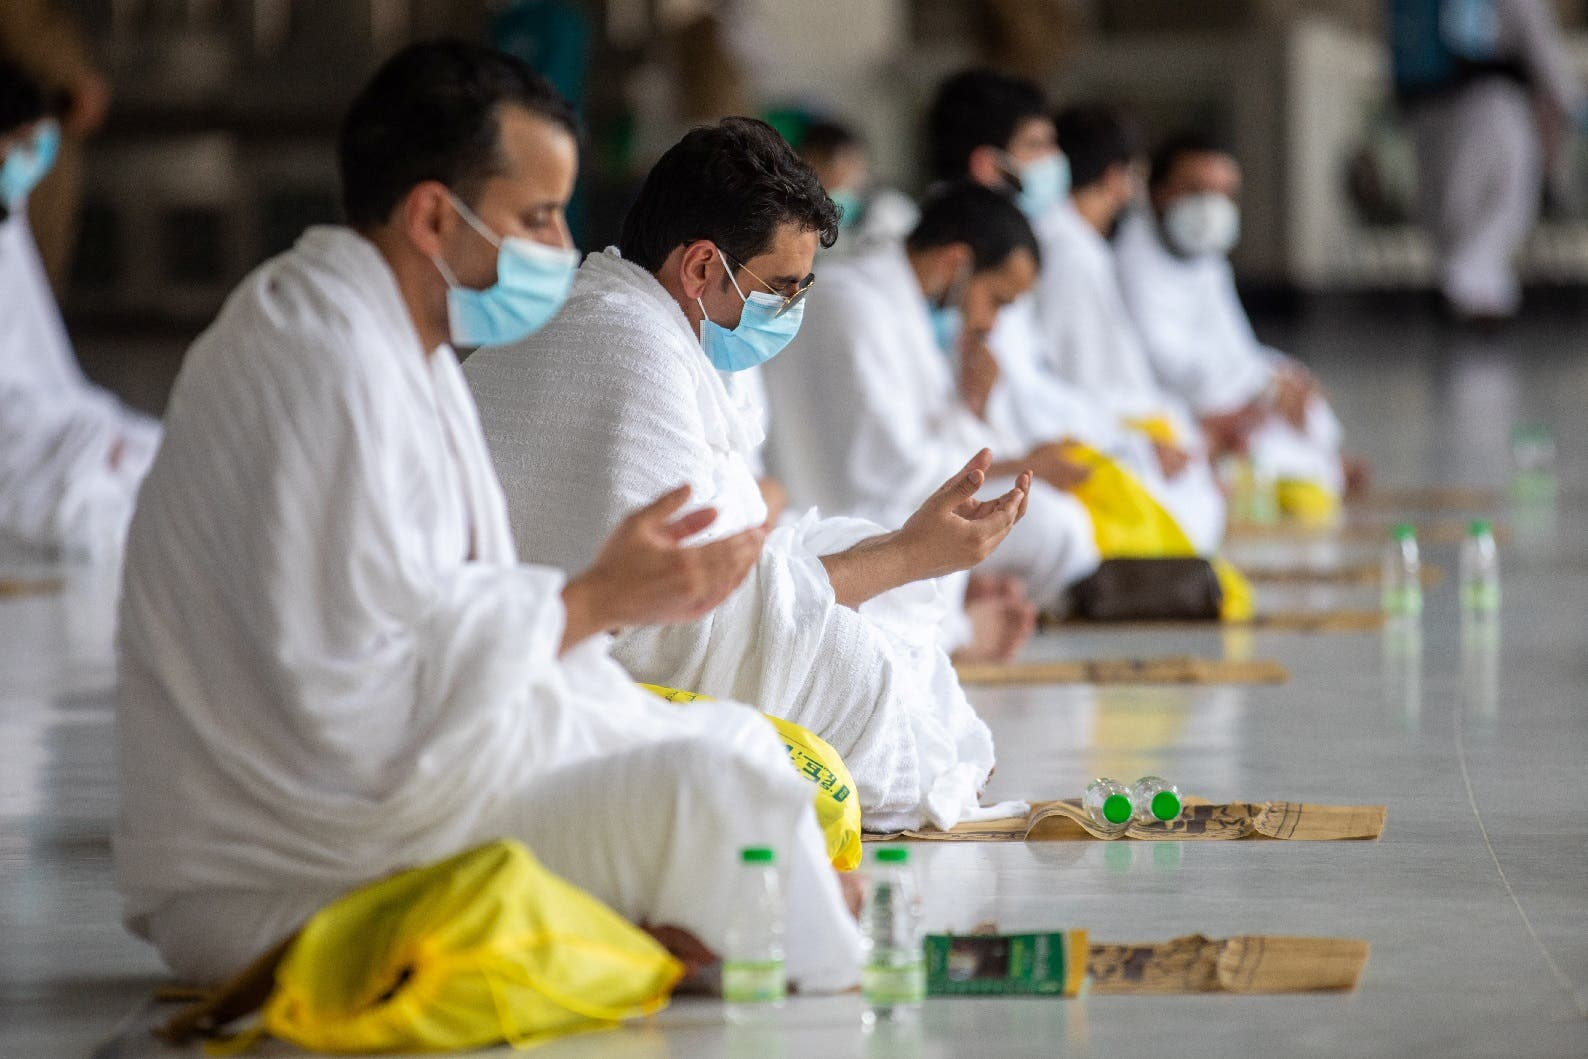 Muslim pilgrims wearing protective face masks pray at the Grand mosque during the annual Haj pilgrimage amid the coronavirus pandemic, in the holy city of Mecca, Saudi Arabia, July 29, 2020. (SPA via Reuters)